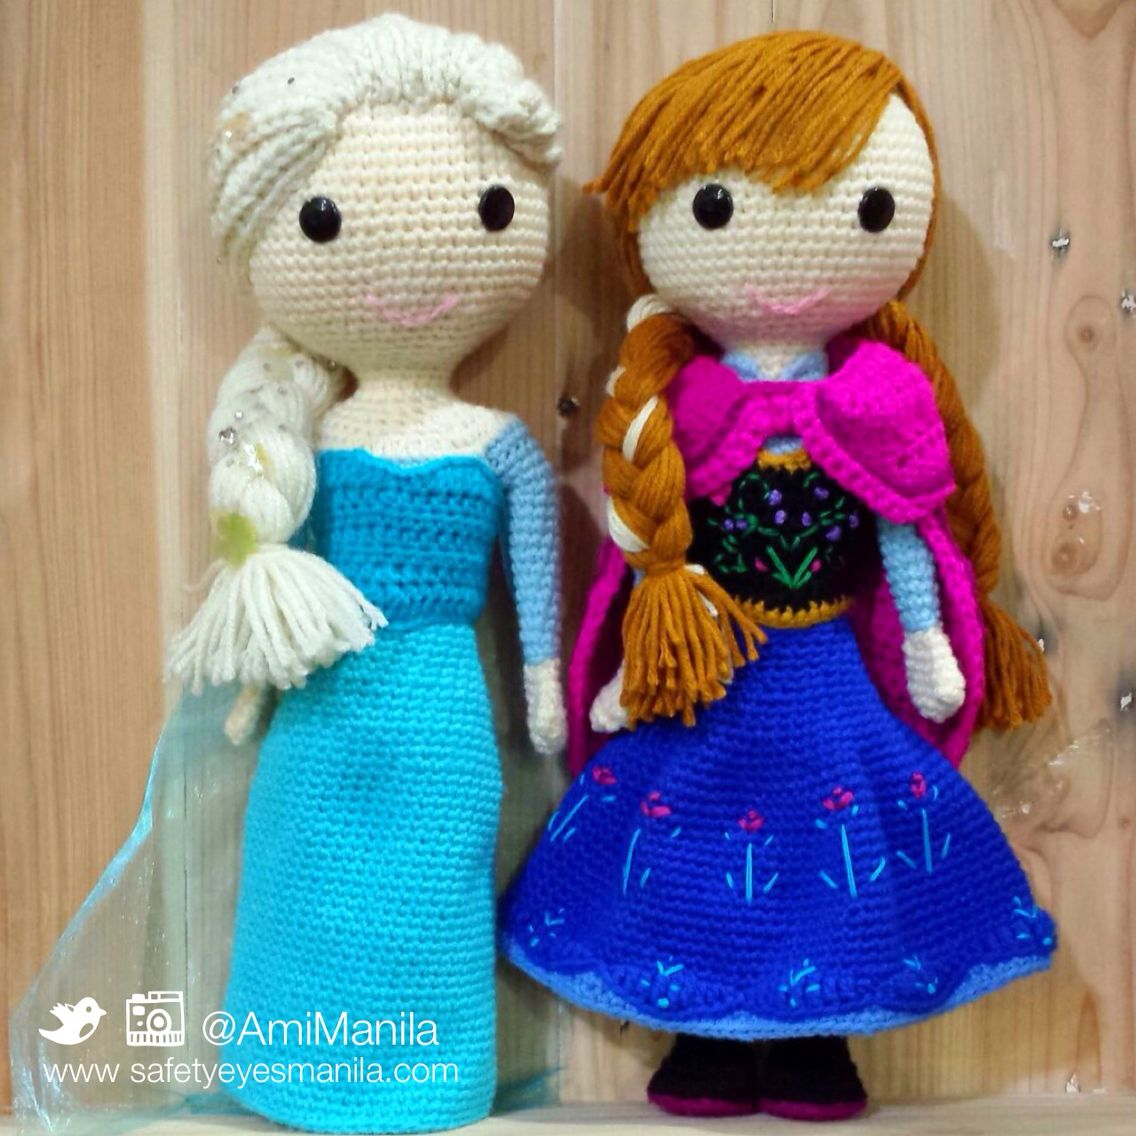 I Made These Elsa And Ana Crochet Dolls From Frozen For A Friend S 4 Year Old Daughter Just In Ti Patron Muñeca Amigurumi Muñeca Amigurumi Muñecos De Ganchillo